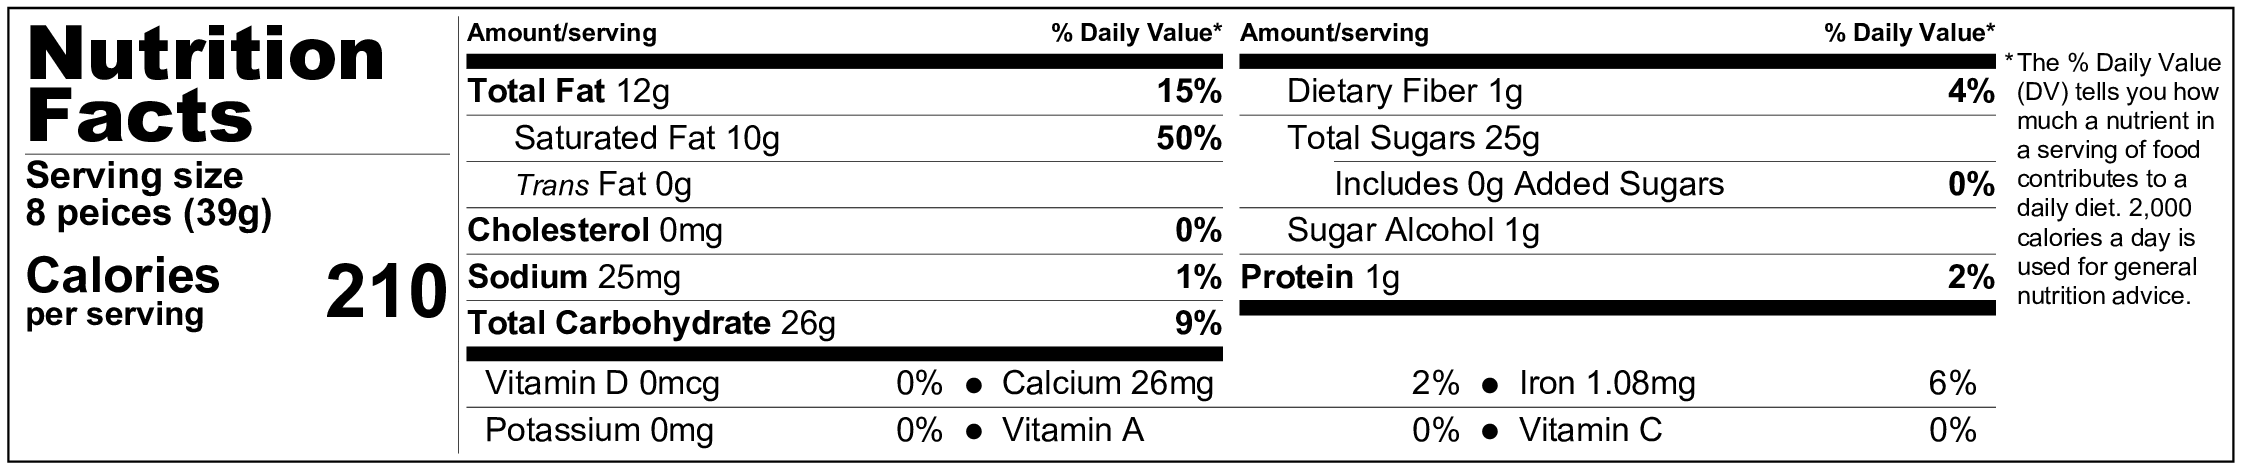 milk-chocolate-foil-base-ball-nutritional-information.png